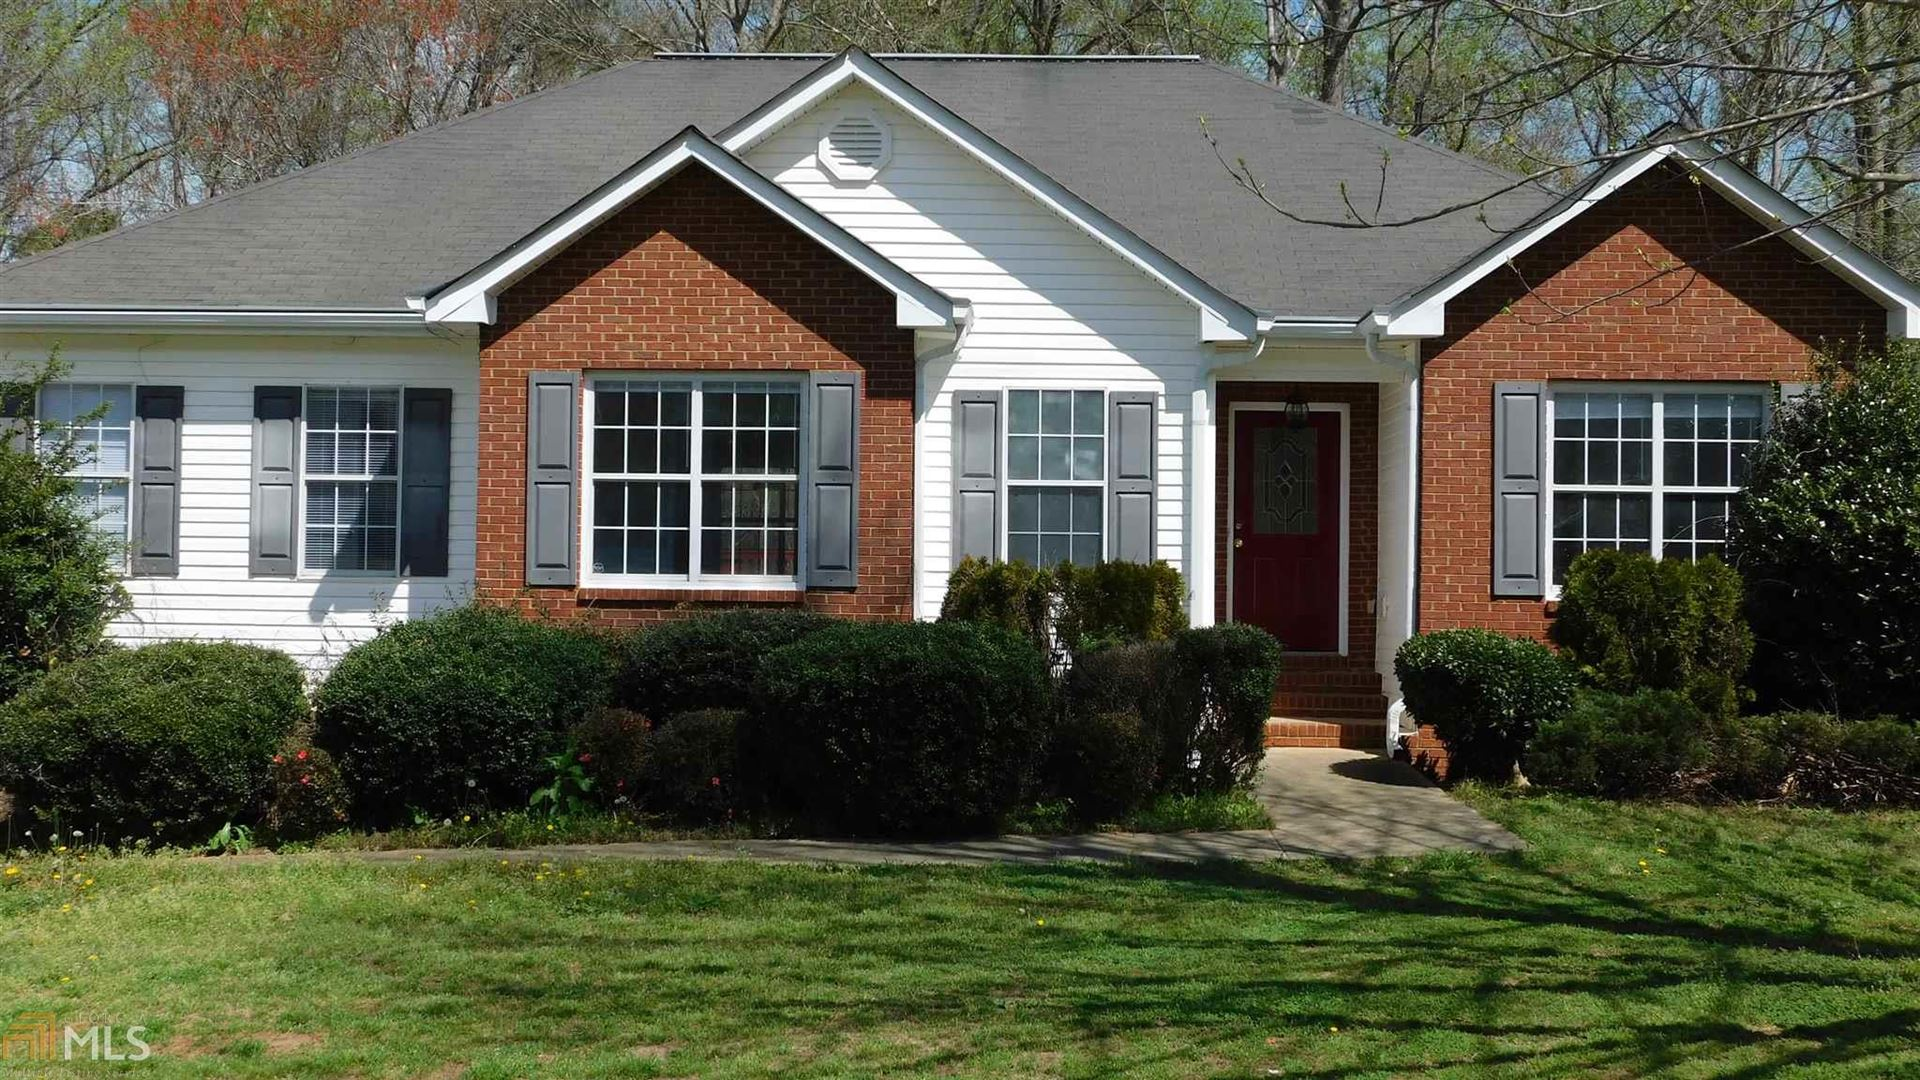 300 Forest Brook Dr, Covington, GA 30016 - #: 8768279